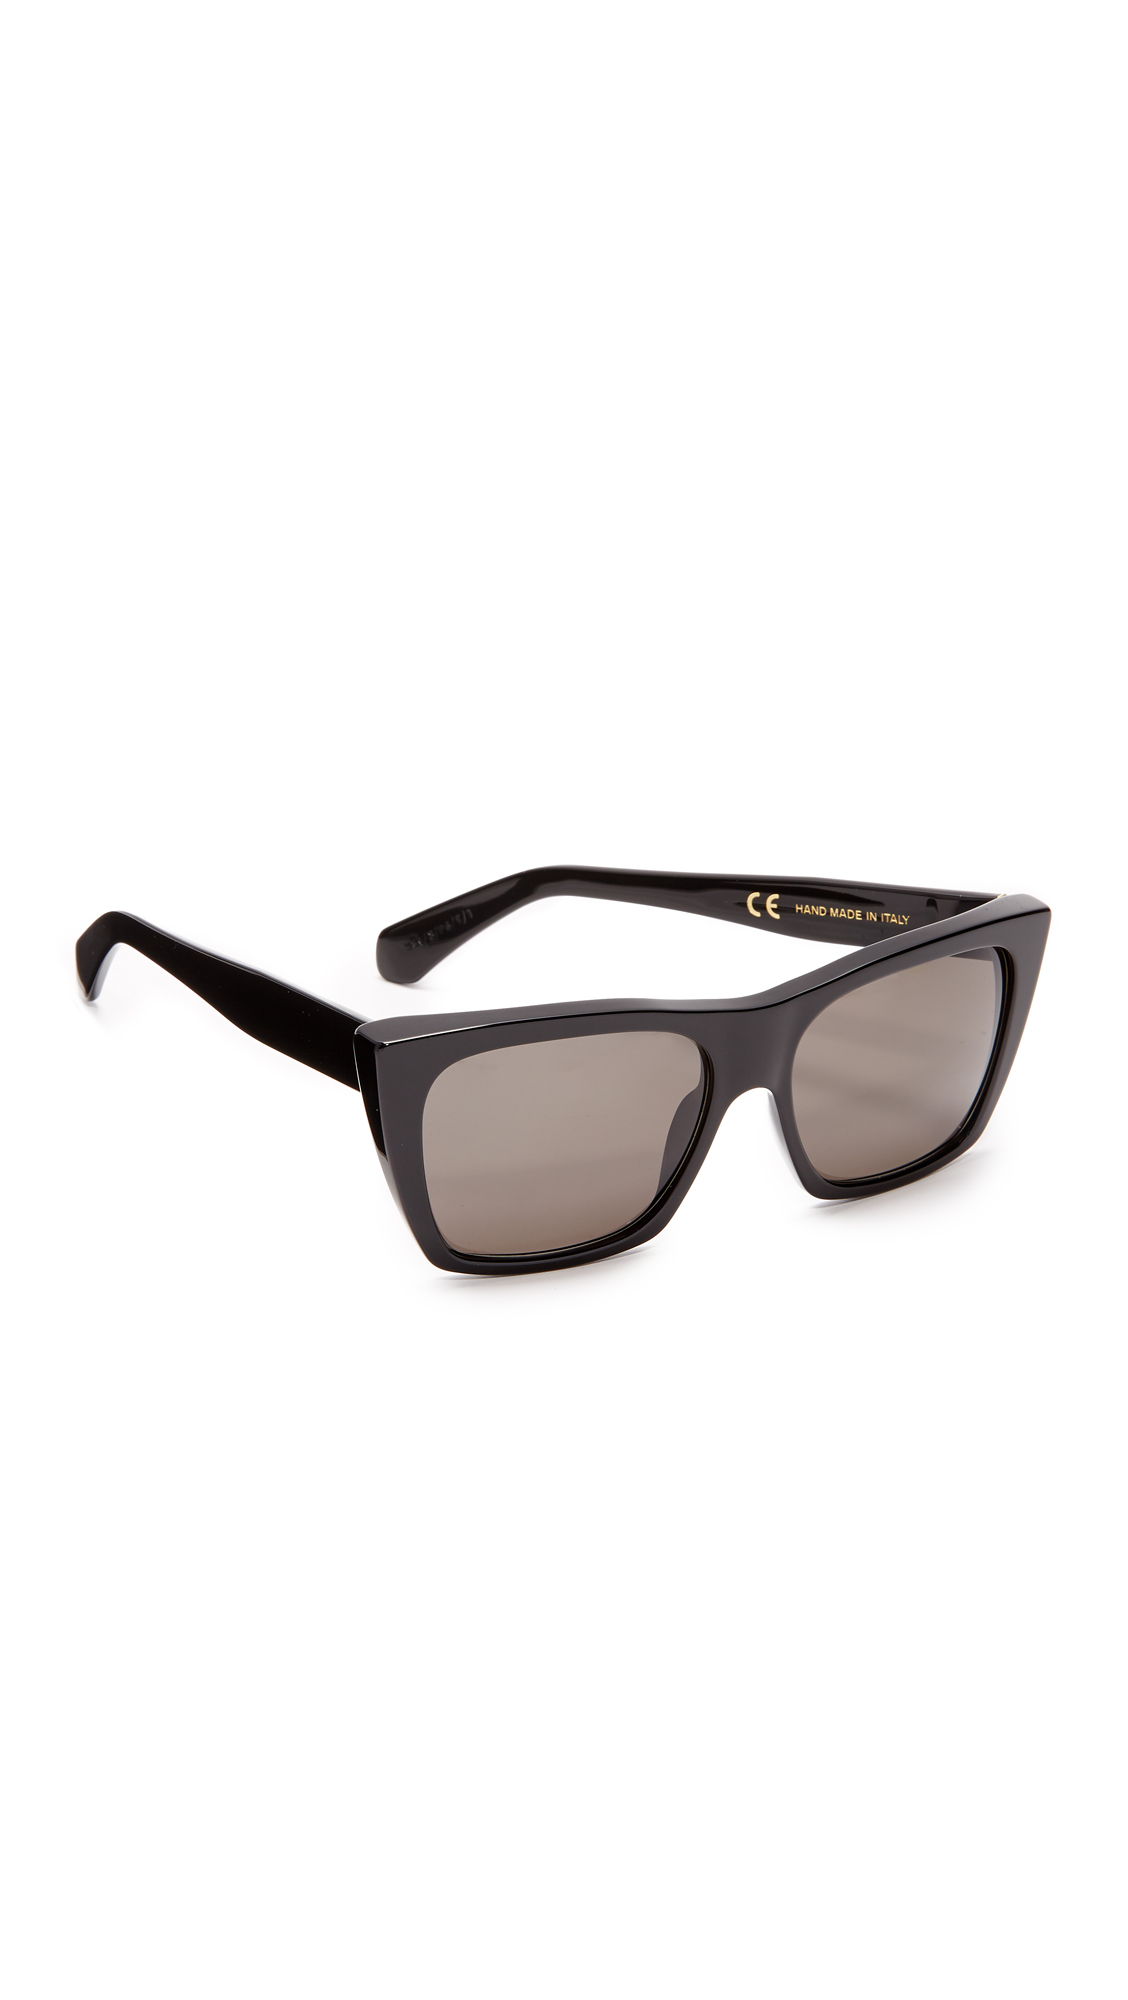 ba79401edde Super Sunglasses Oki Sunglasses